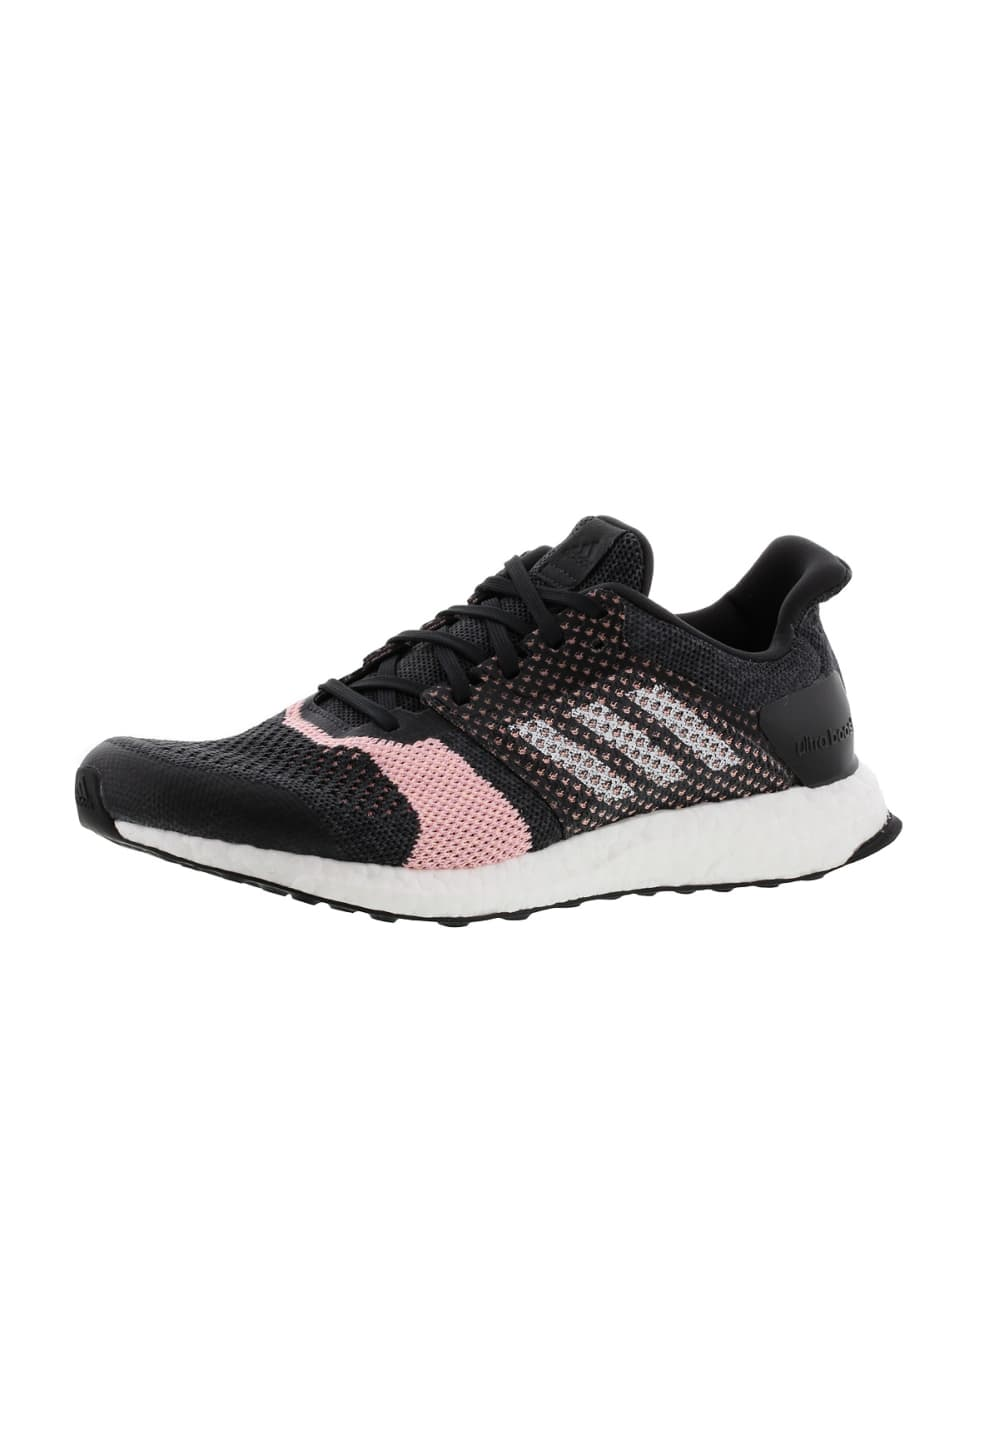 new styles 5c267 a9a60 adidas Ultra Boost St - Running shoes for Women - Black